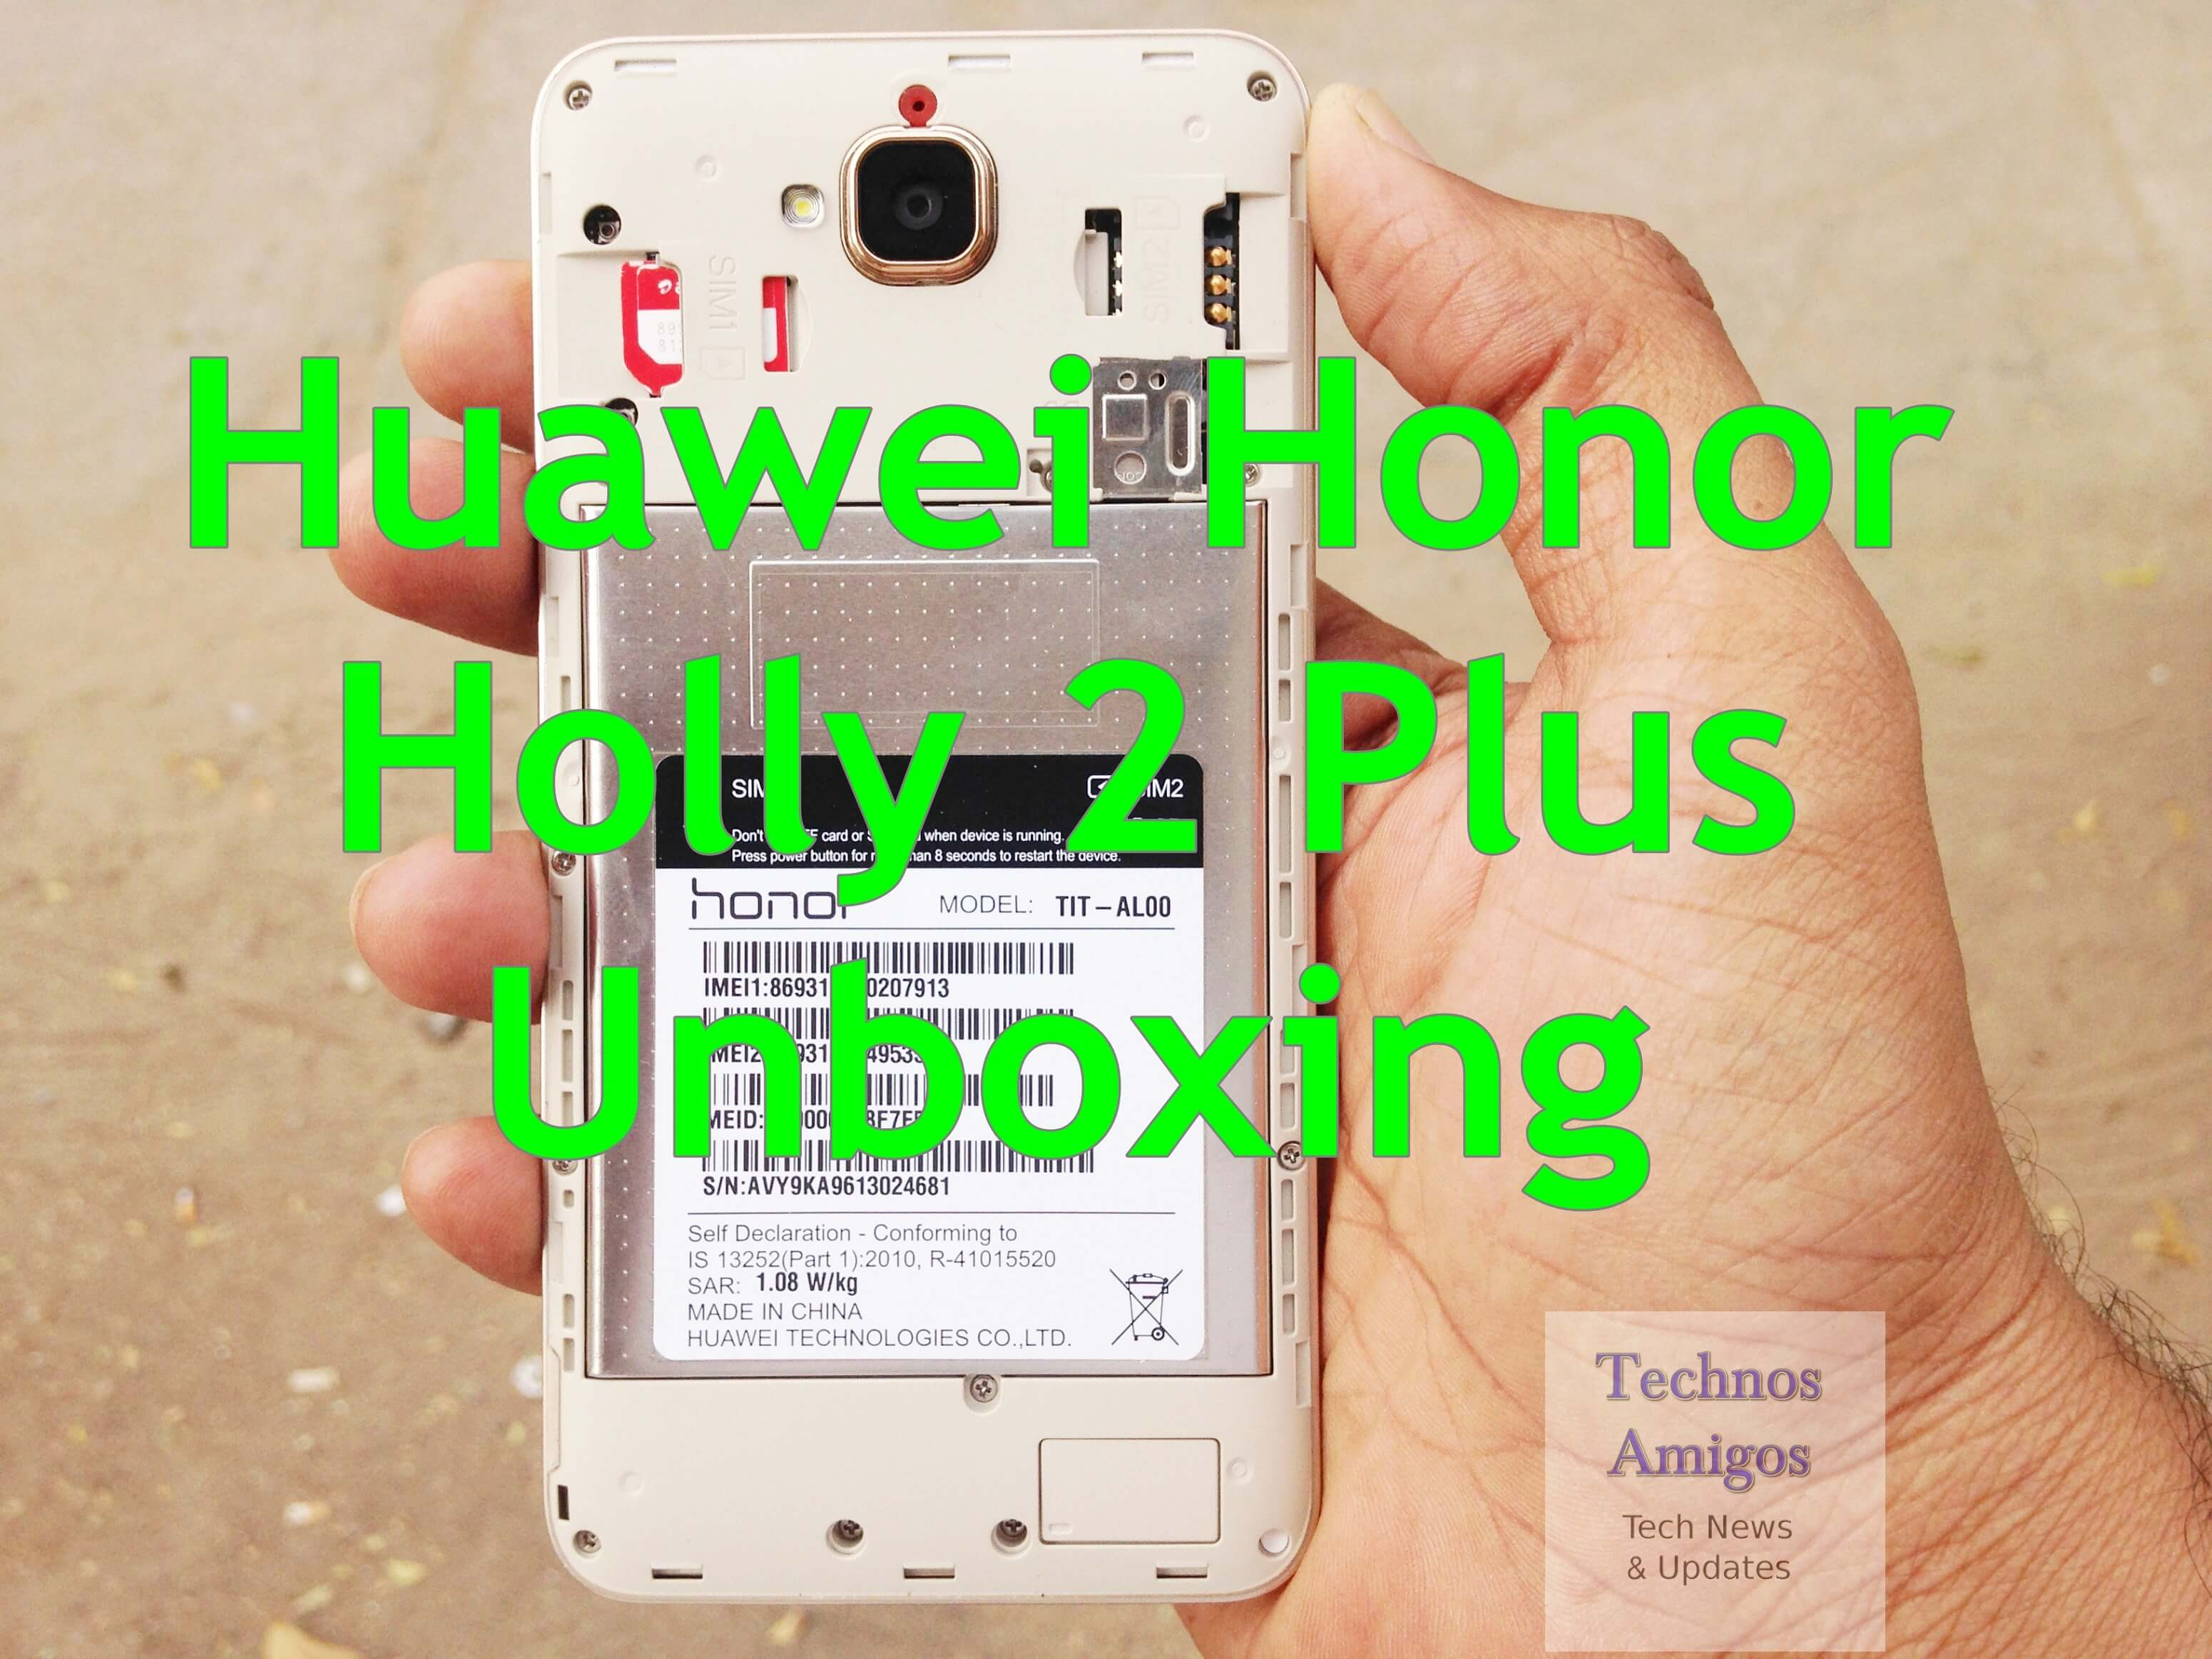 Honor Holly 2 Plus Unboxing